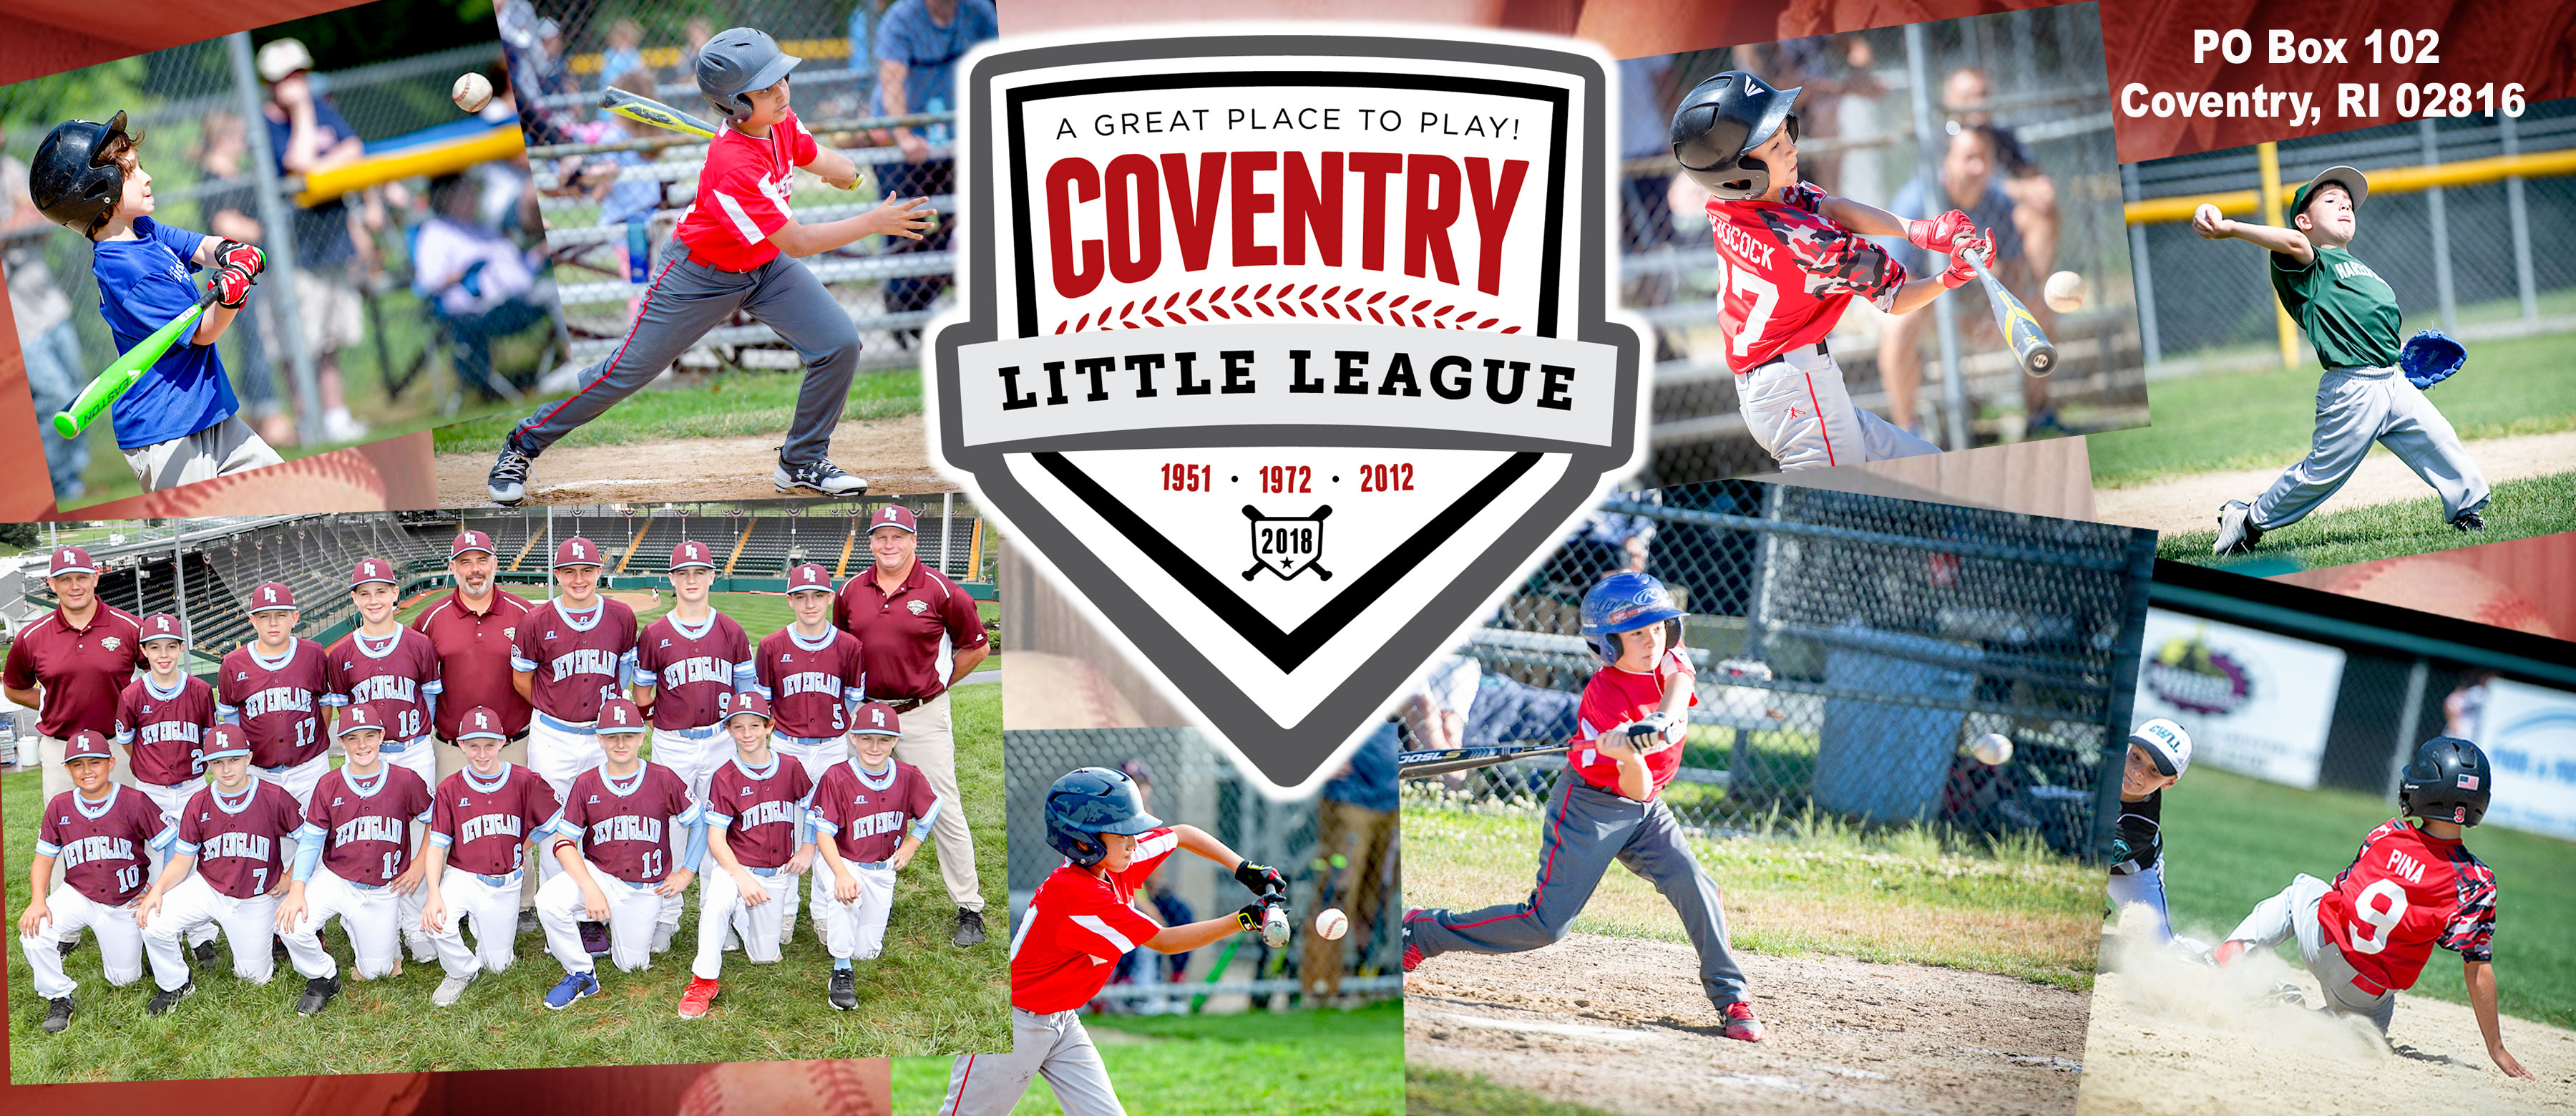 Coventry Little League, Baseball, Run, Field